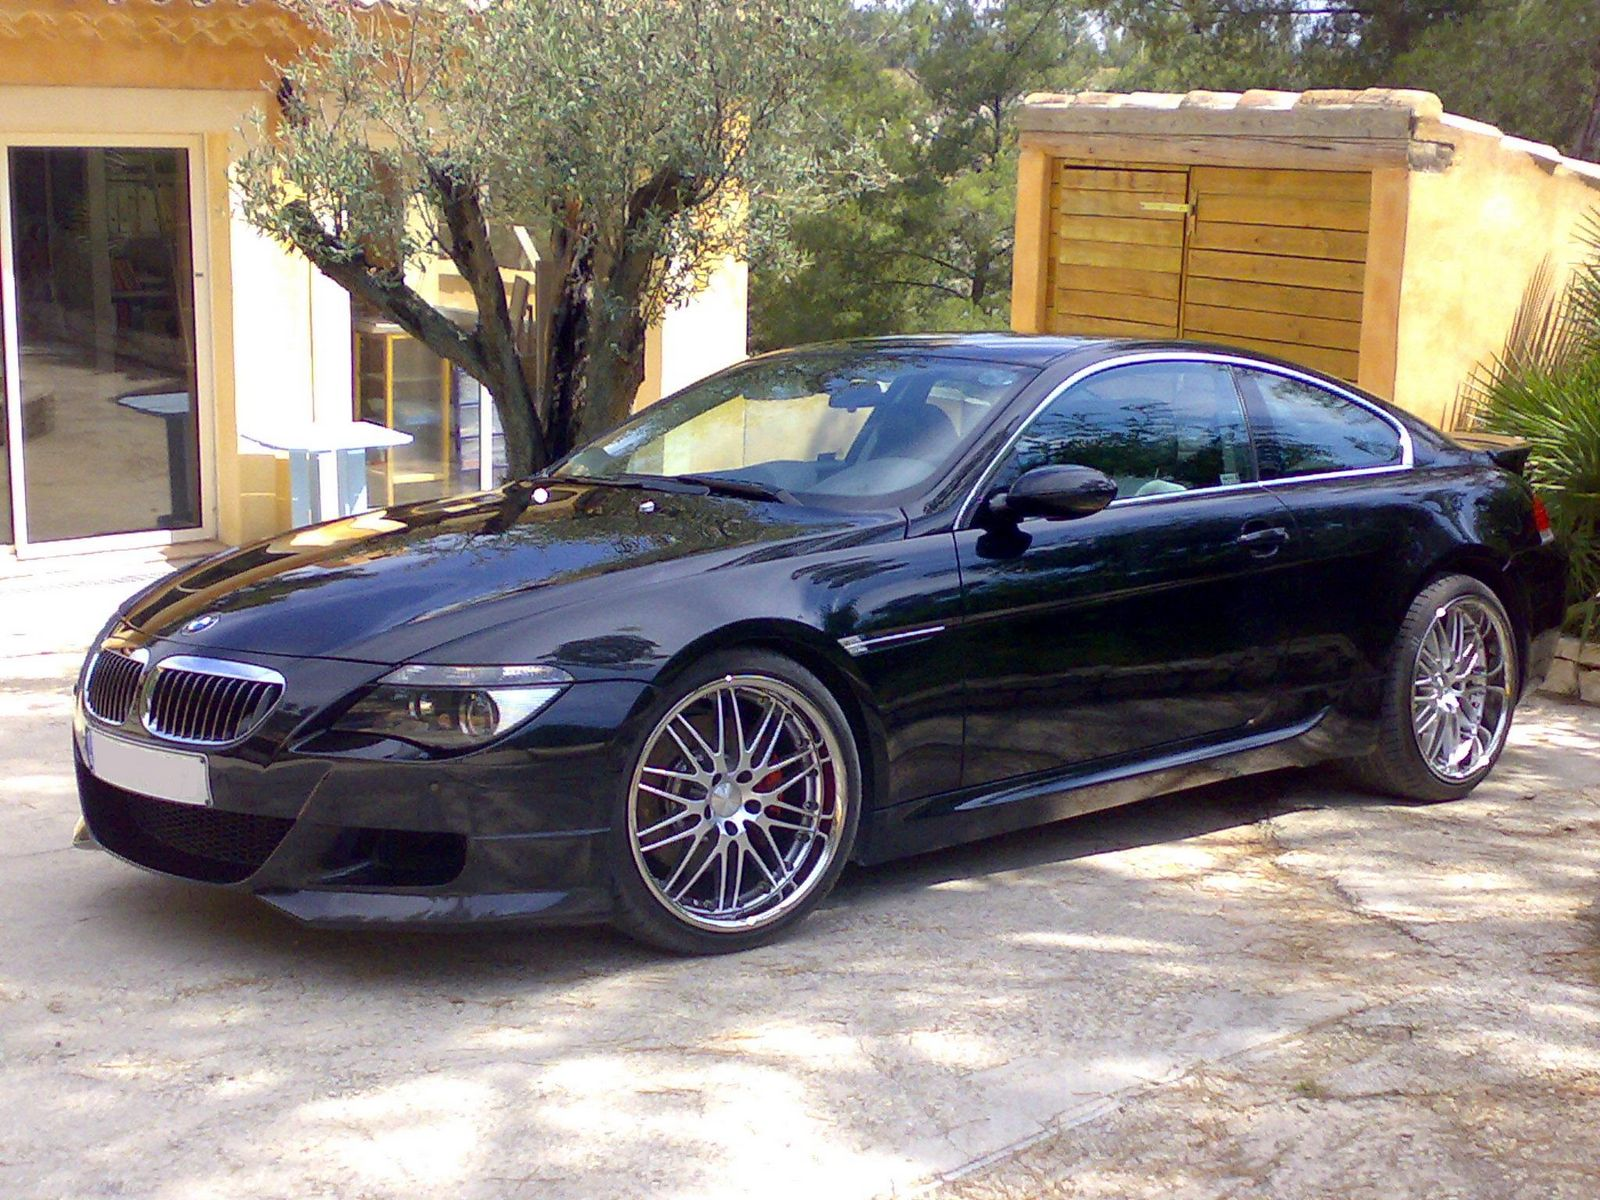 BMW Review Amazing Pictures And Images Look At The Car - Bmw 645 2005